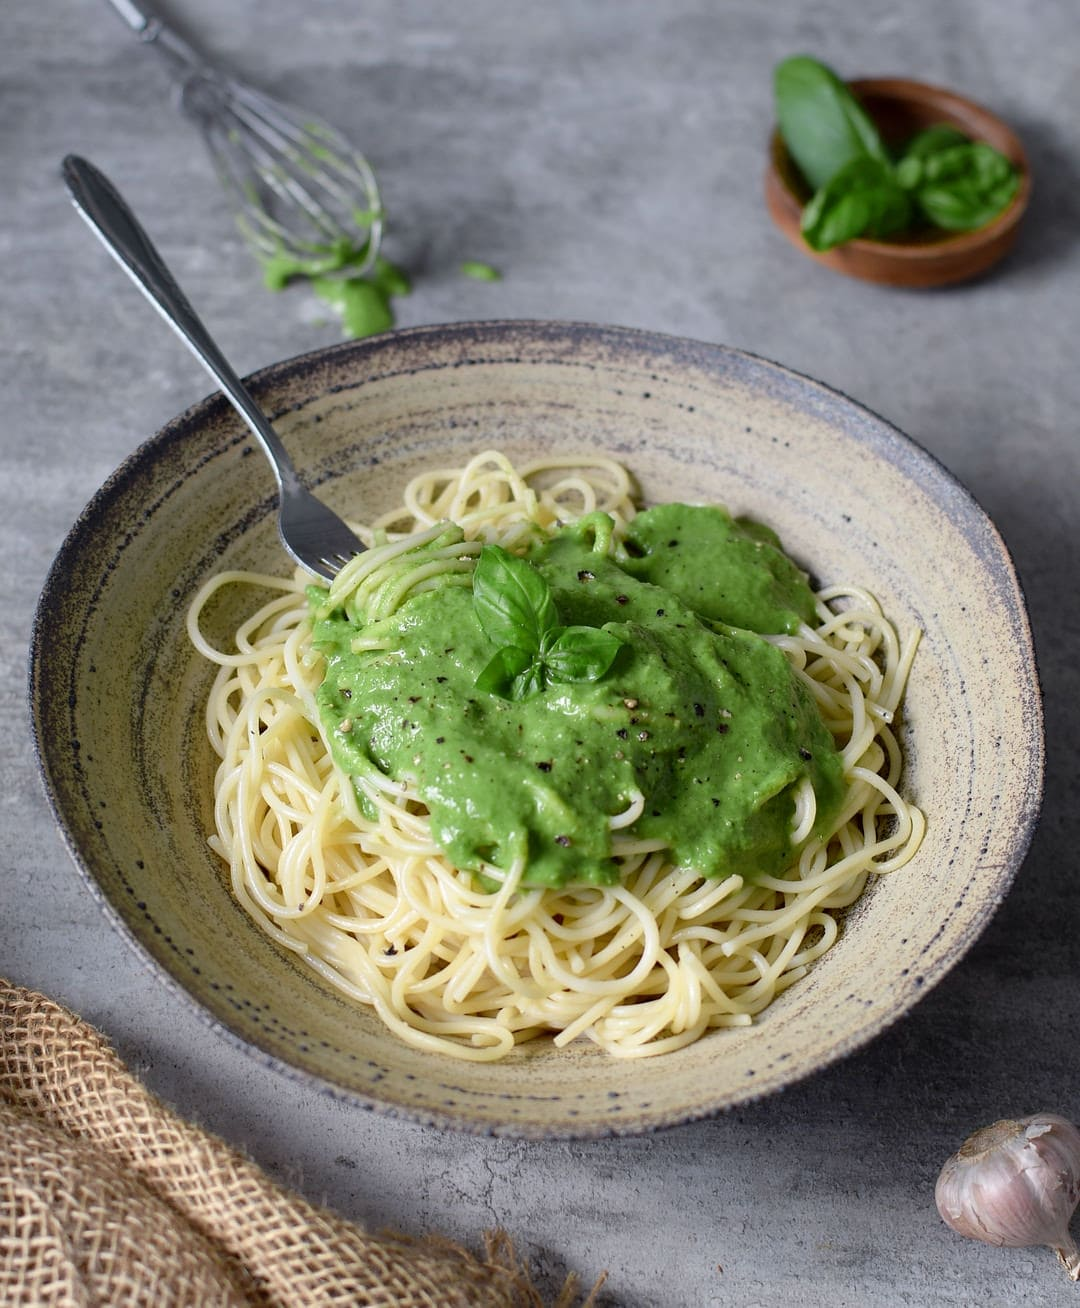 vegan spinach pasta sauce recipe - a creamy spinach basil sauce for spaghetti which is plantbased and gluten free